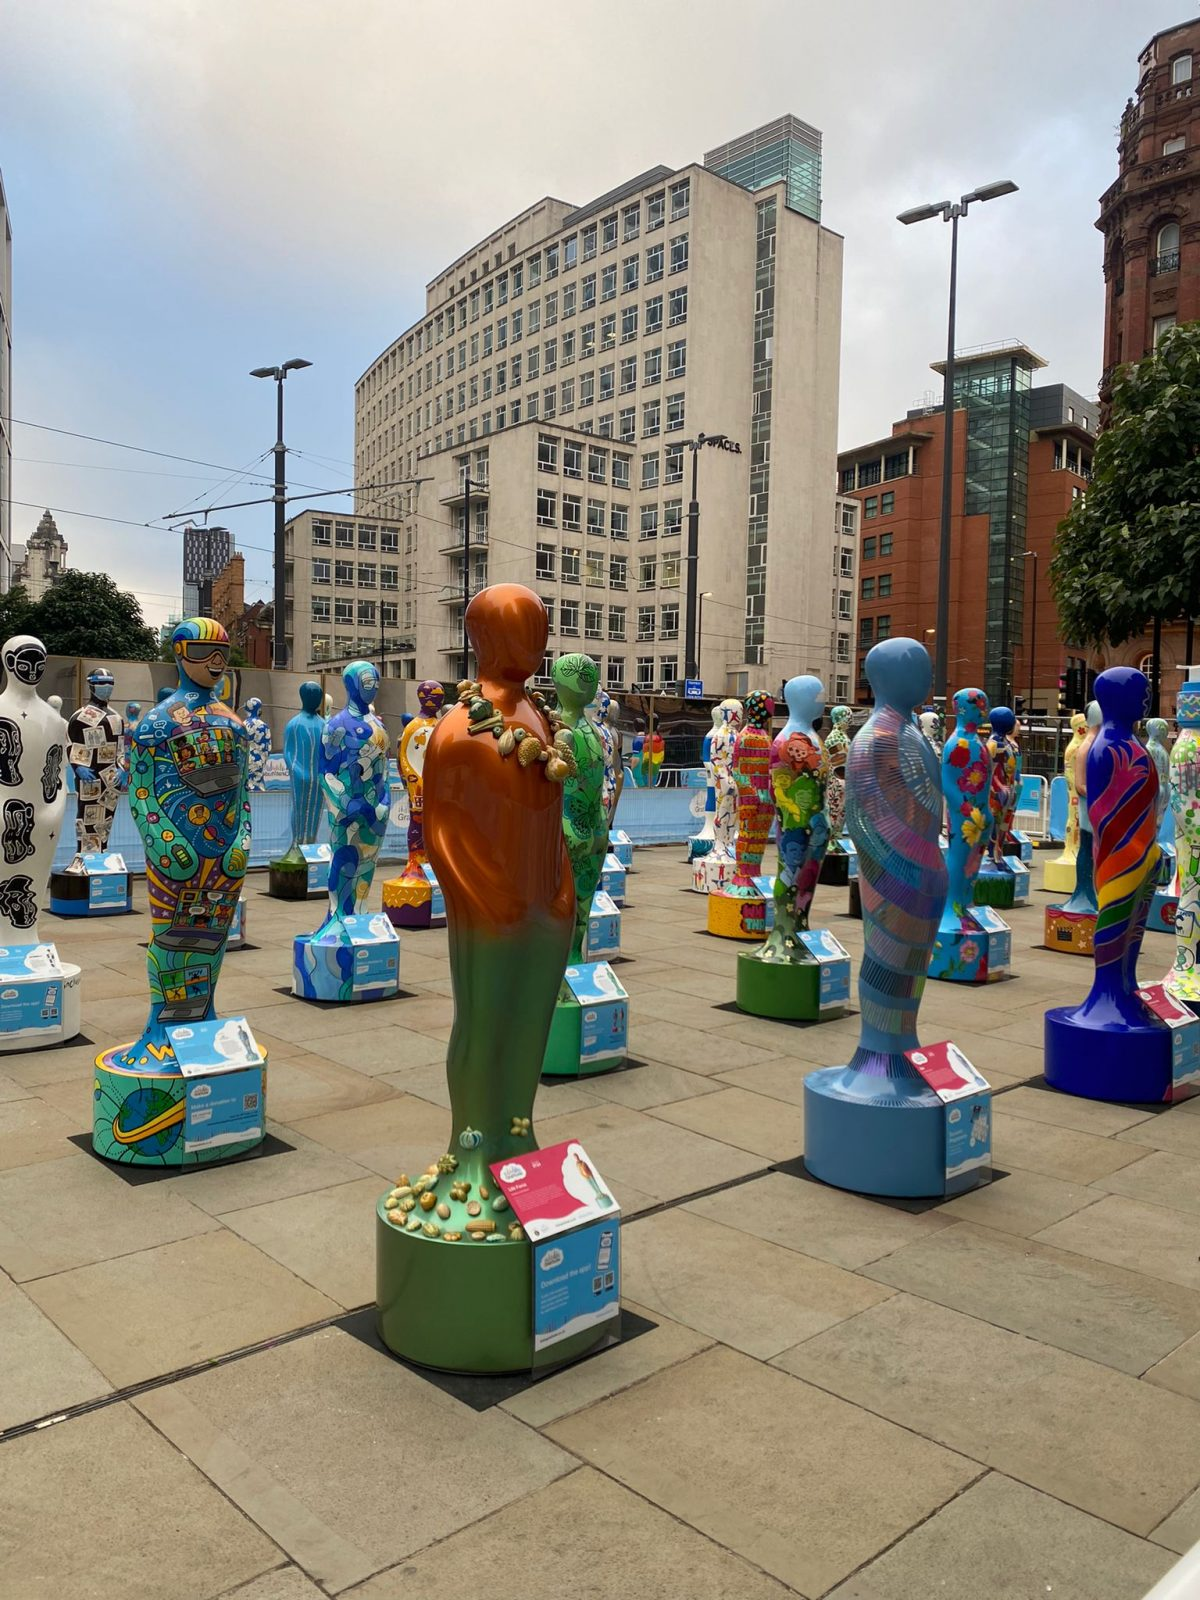 Why there are dozens of colourful statues in Manchester this morning, The Manc